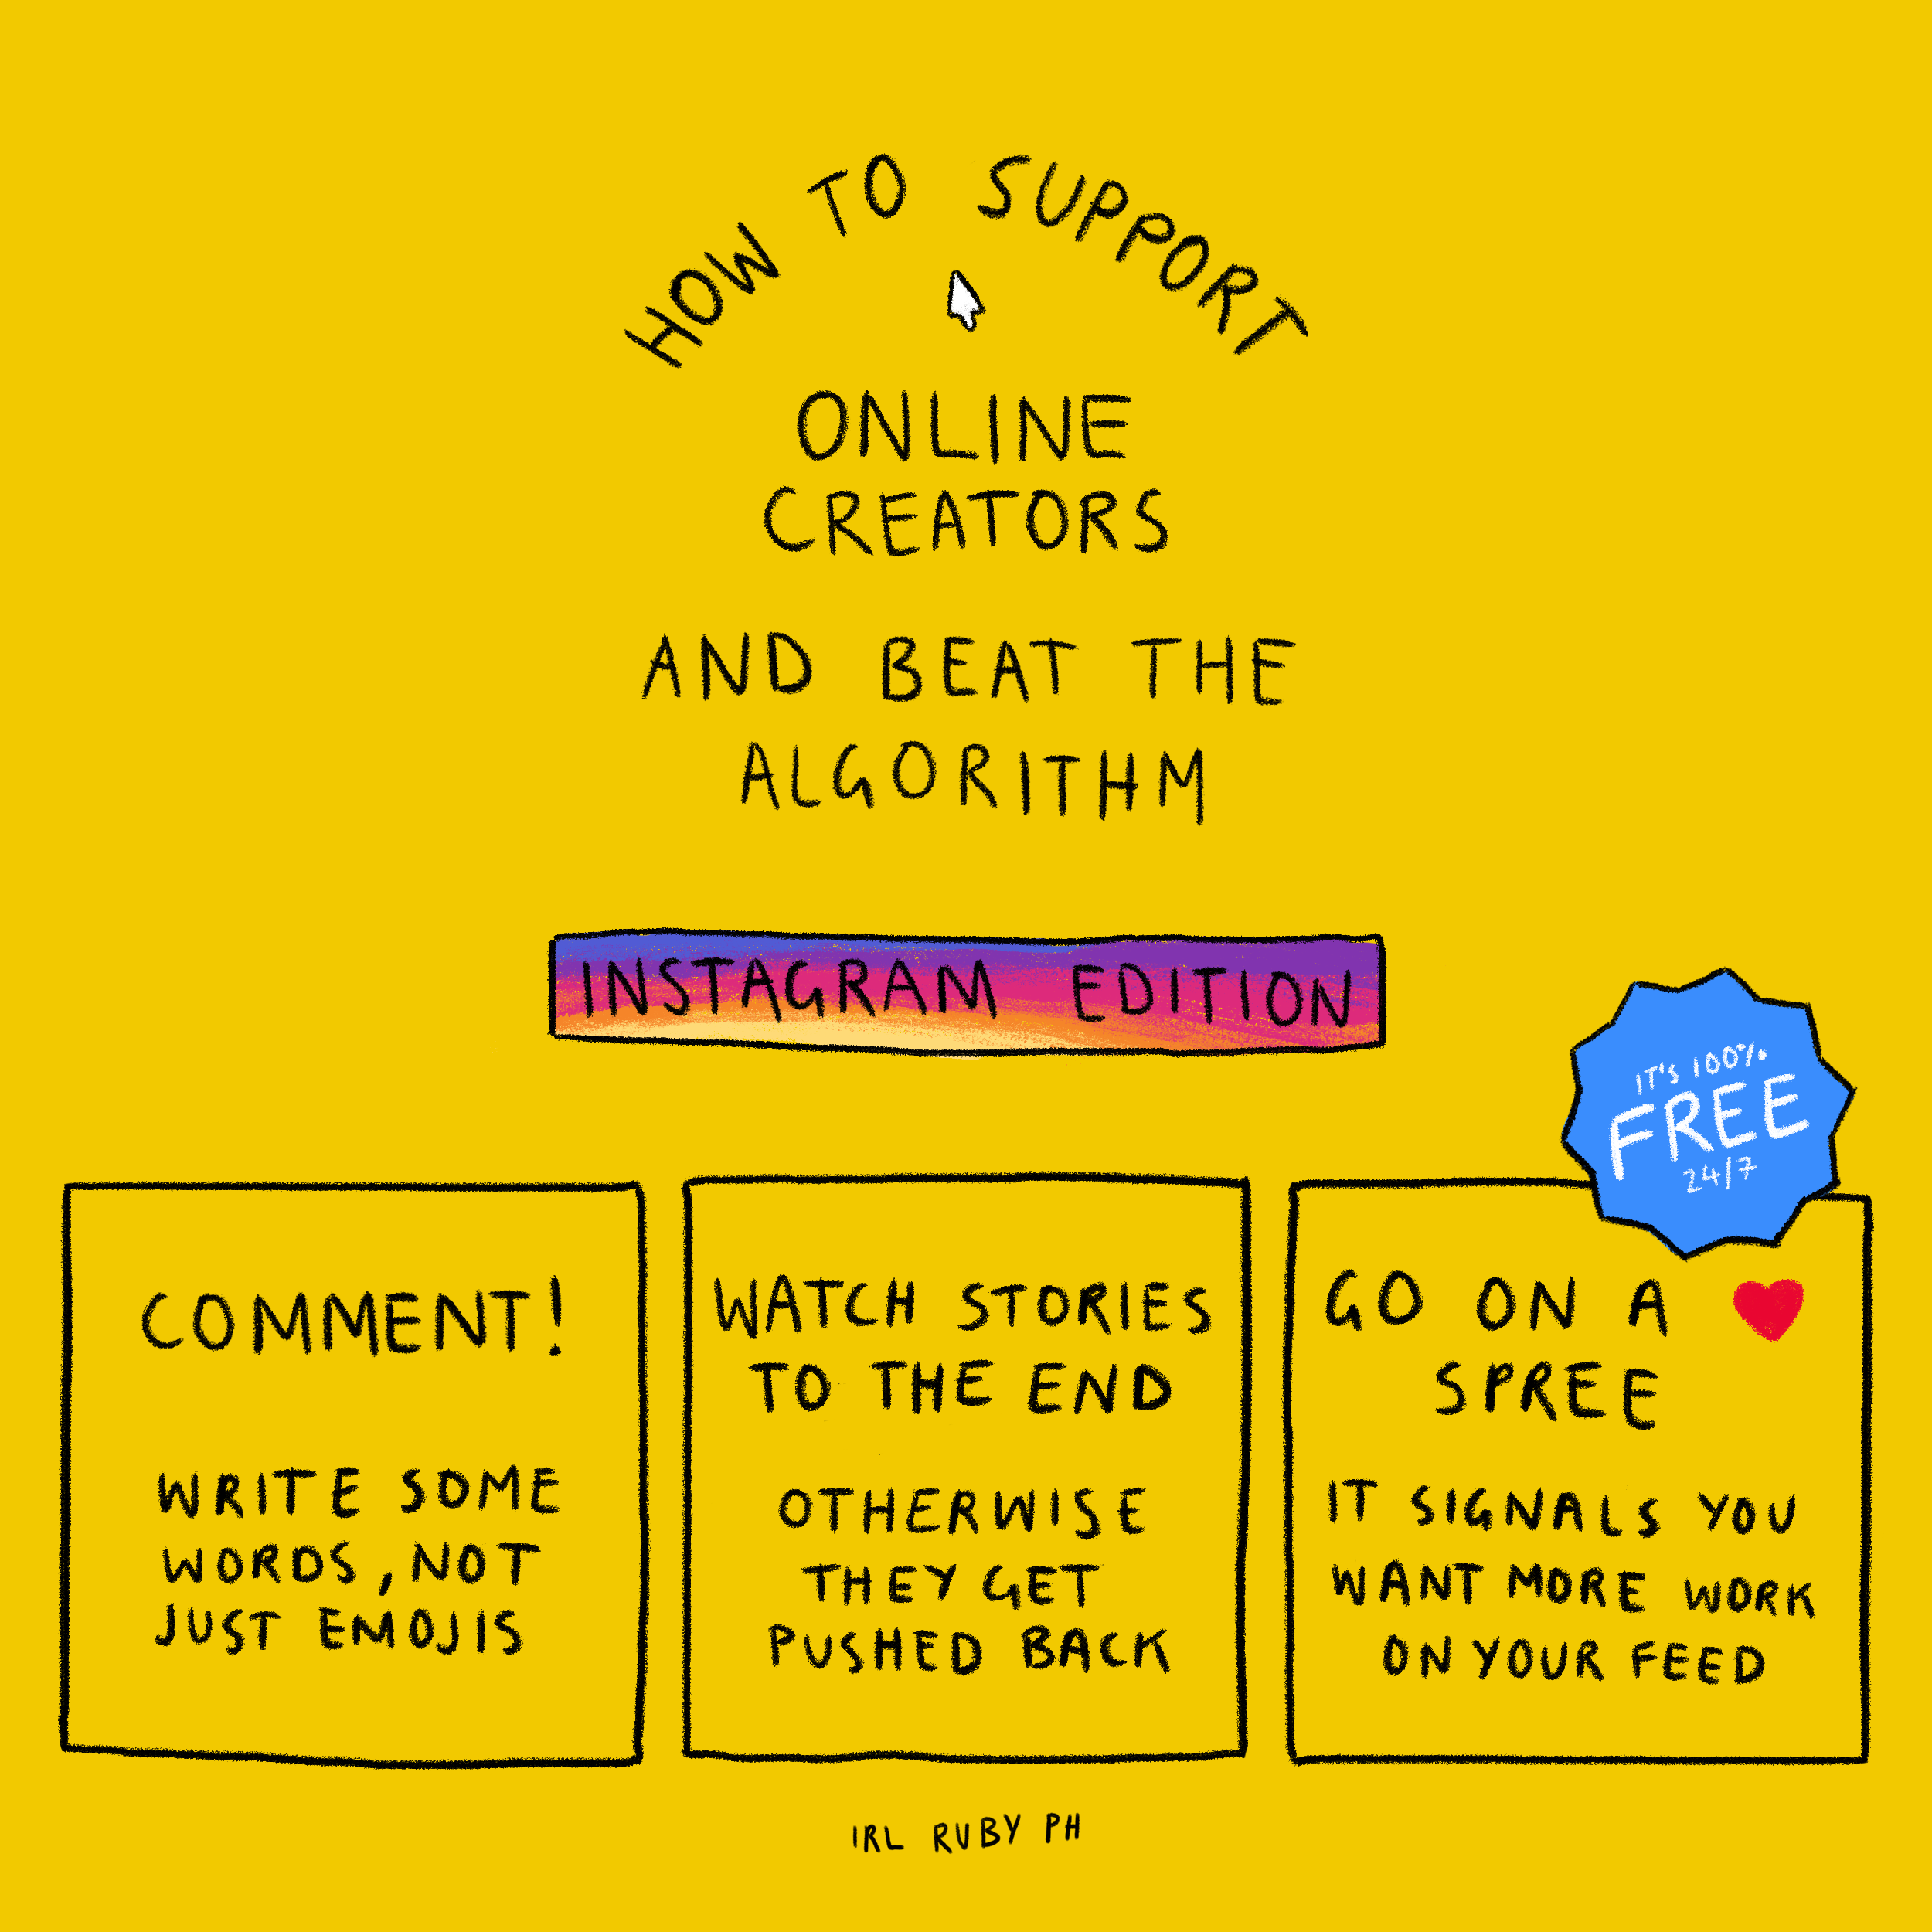 Support Online Creators: Instagram - 2018